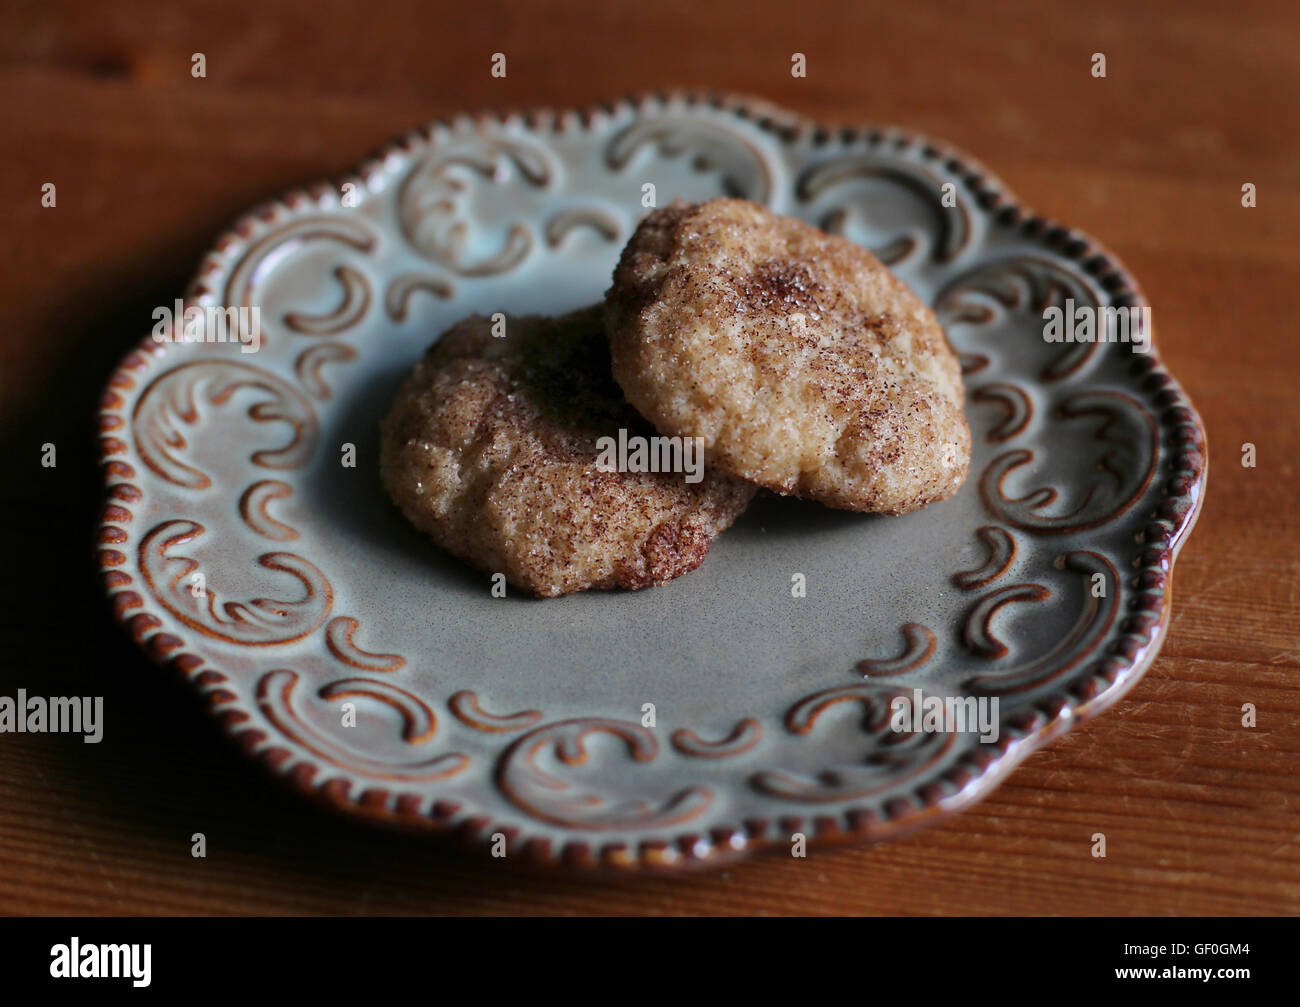 Two snickerdoodle cookies on a plate. - Stock Image